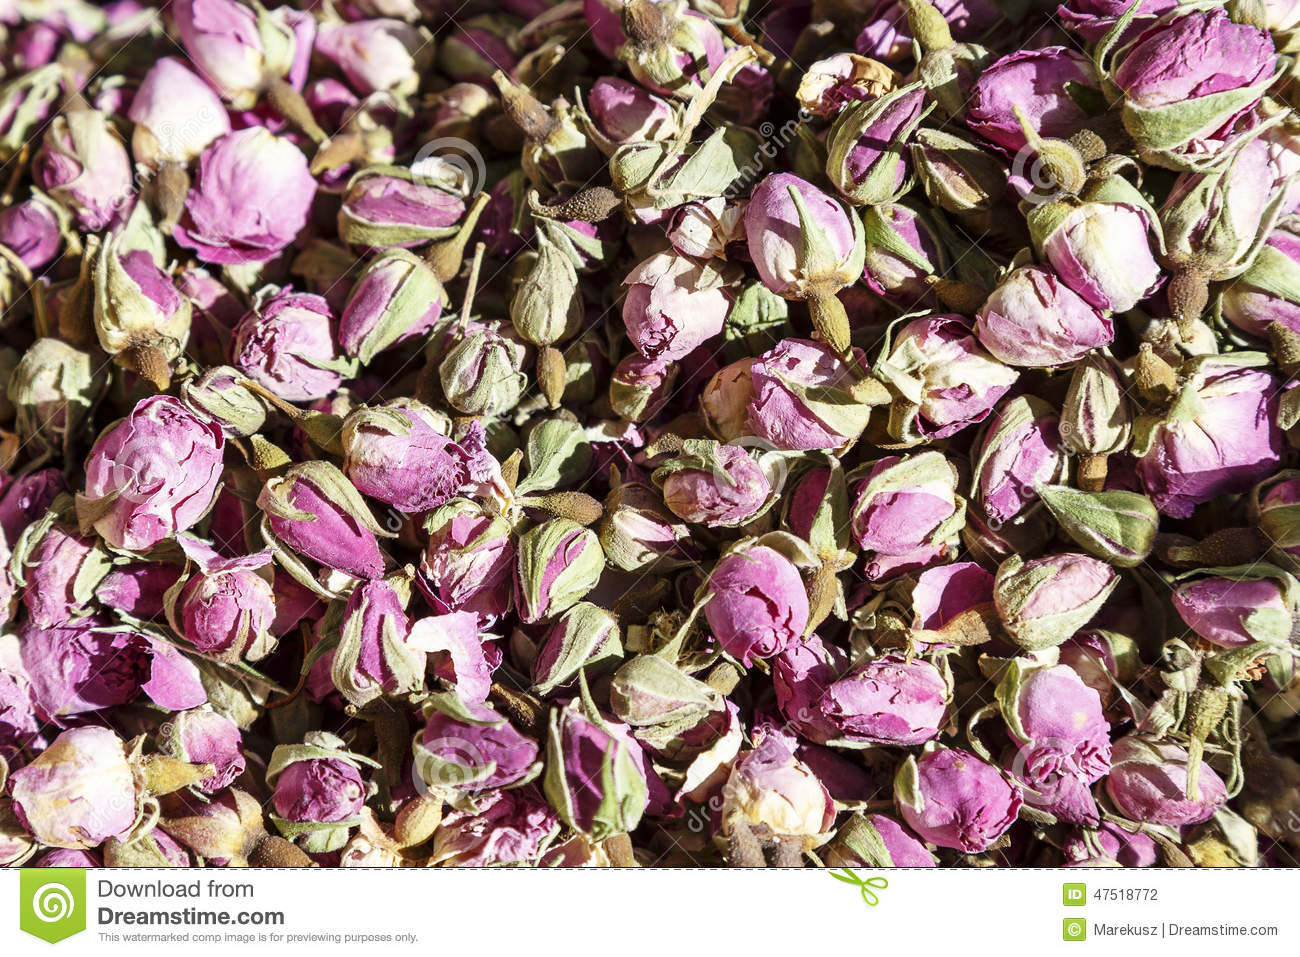 Small Flowers, Dried Roses Exposed For Sale Stock Photo - Image of ...